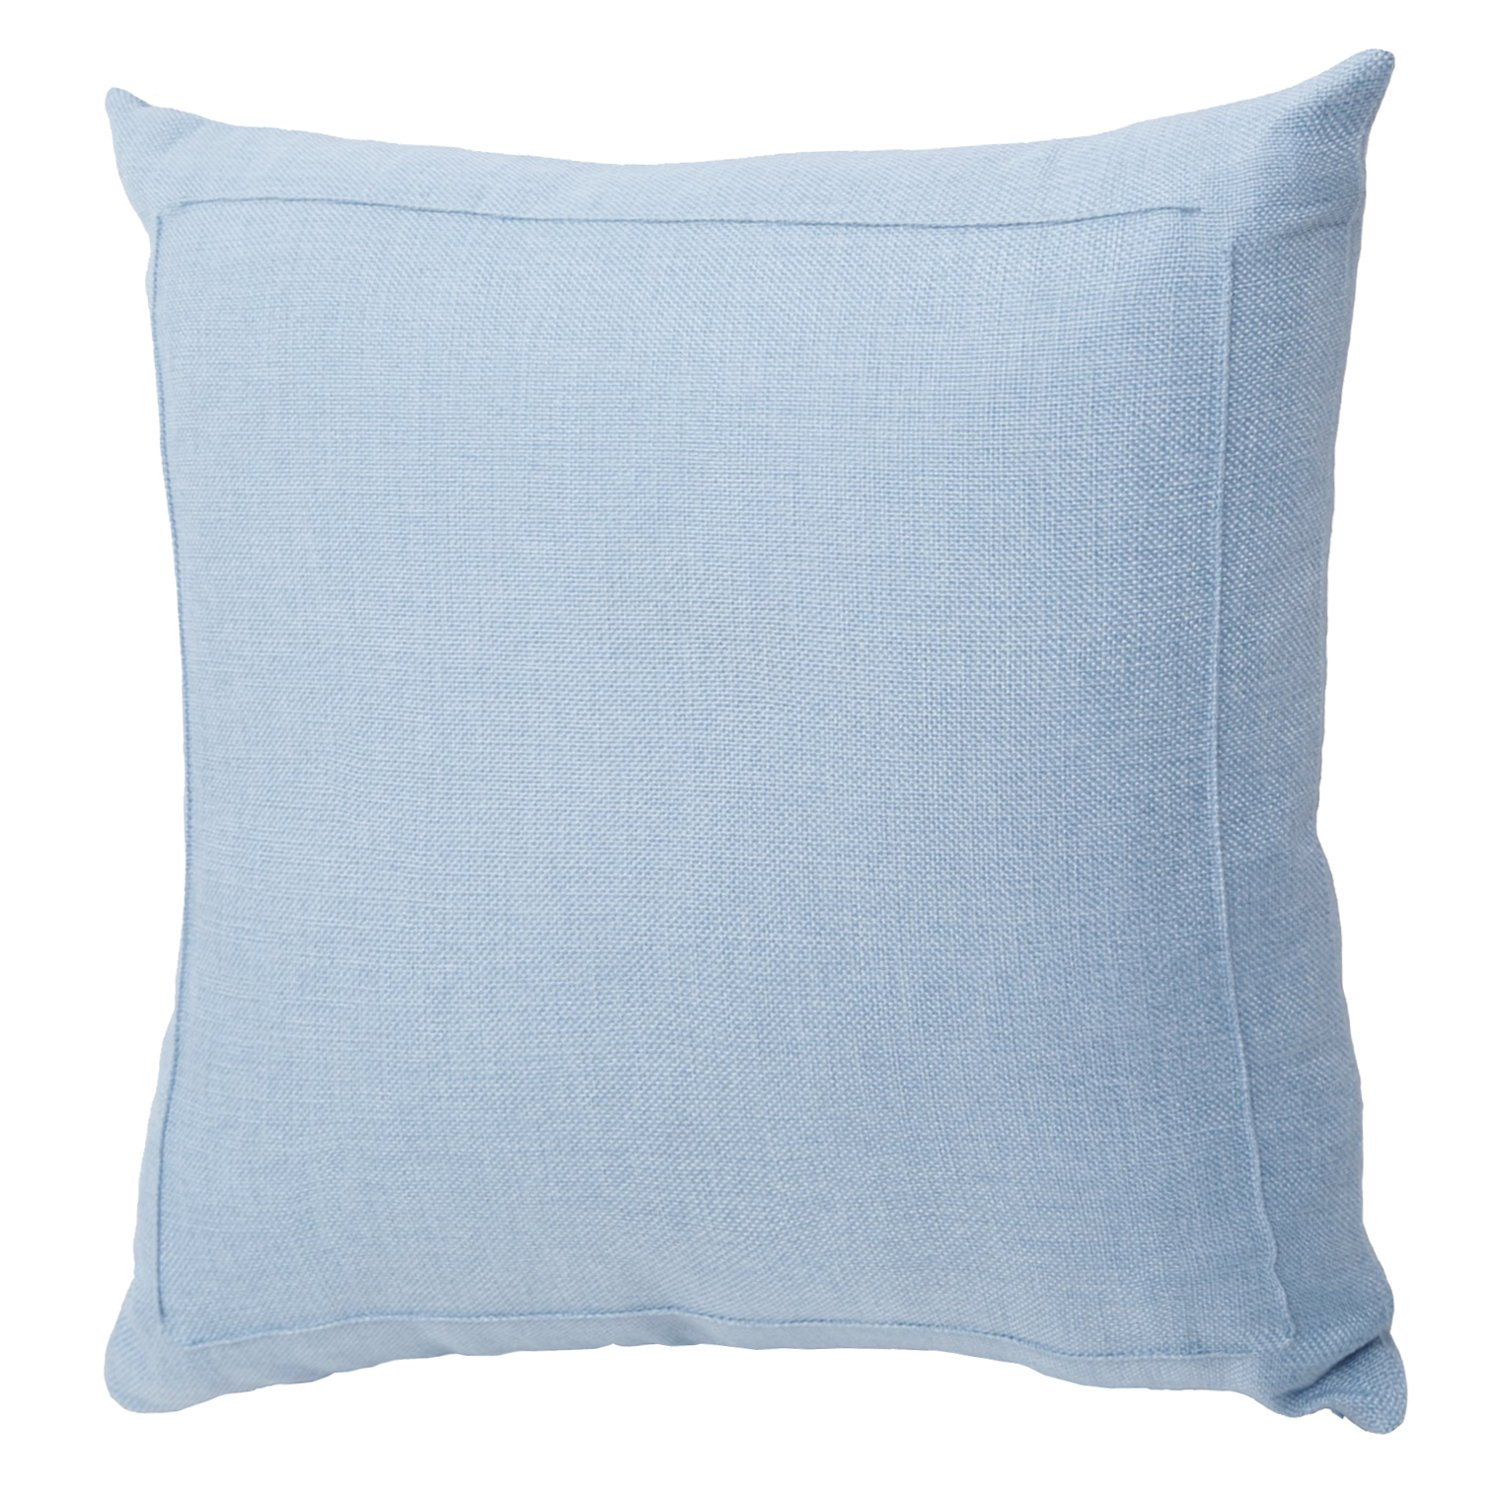 Jepeak Burlap Linen Throw Pillow Case Cushion Cover Farmhouse Decorative Solid Square Pillowcase, Thick, Luxury, Handmade with Invisible Zipper for Sofa Couch Bed (20'' x 20'', Baby Blue)